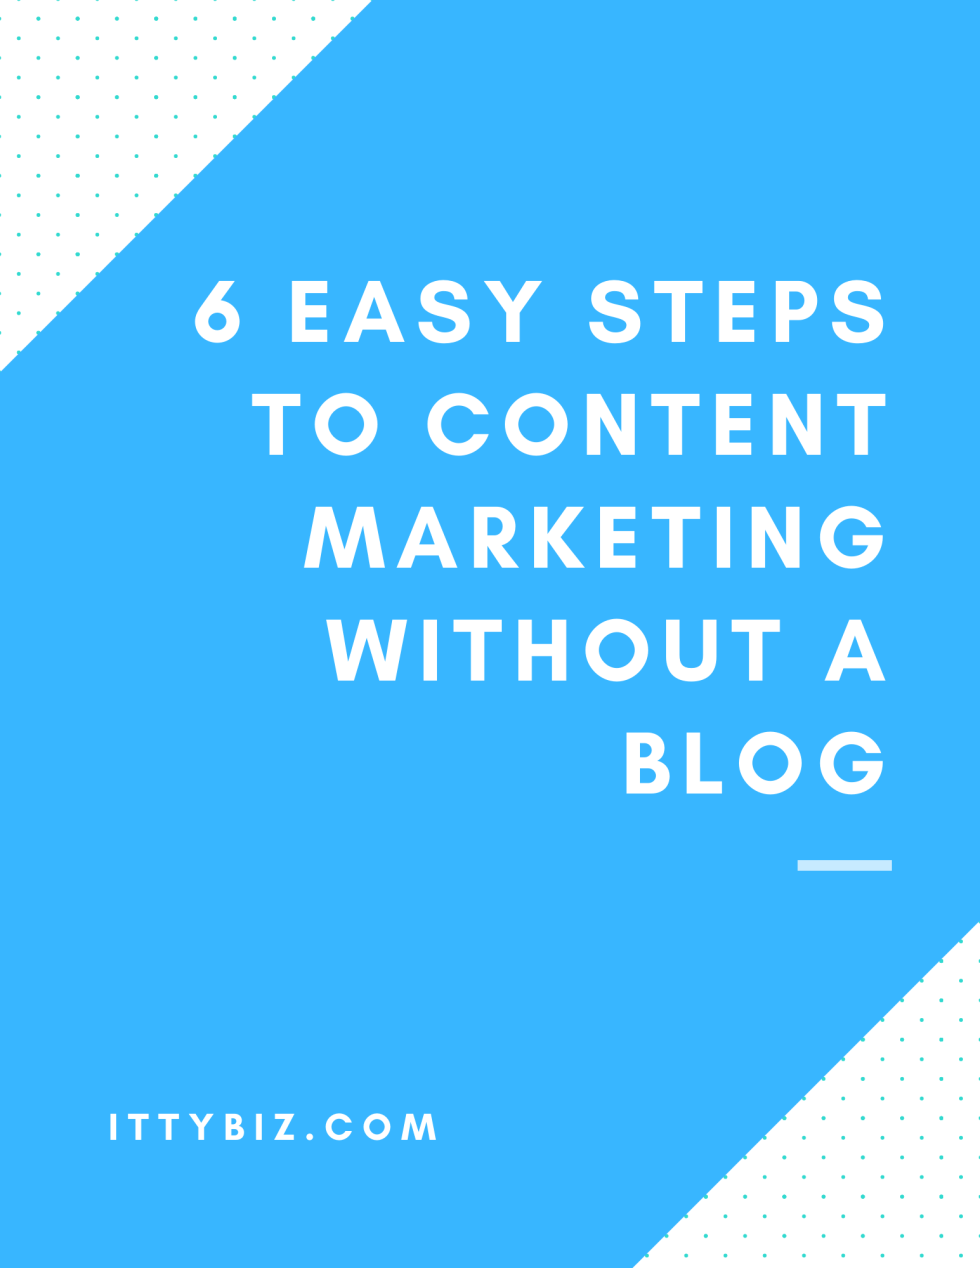 Content Marketing Without A Blog